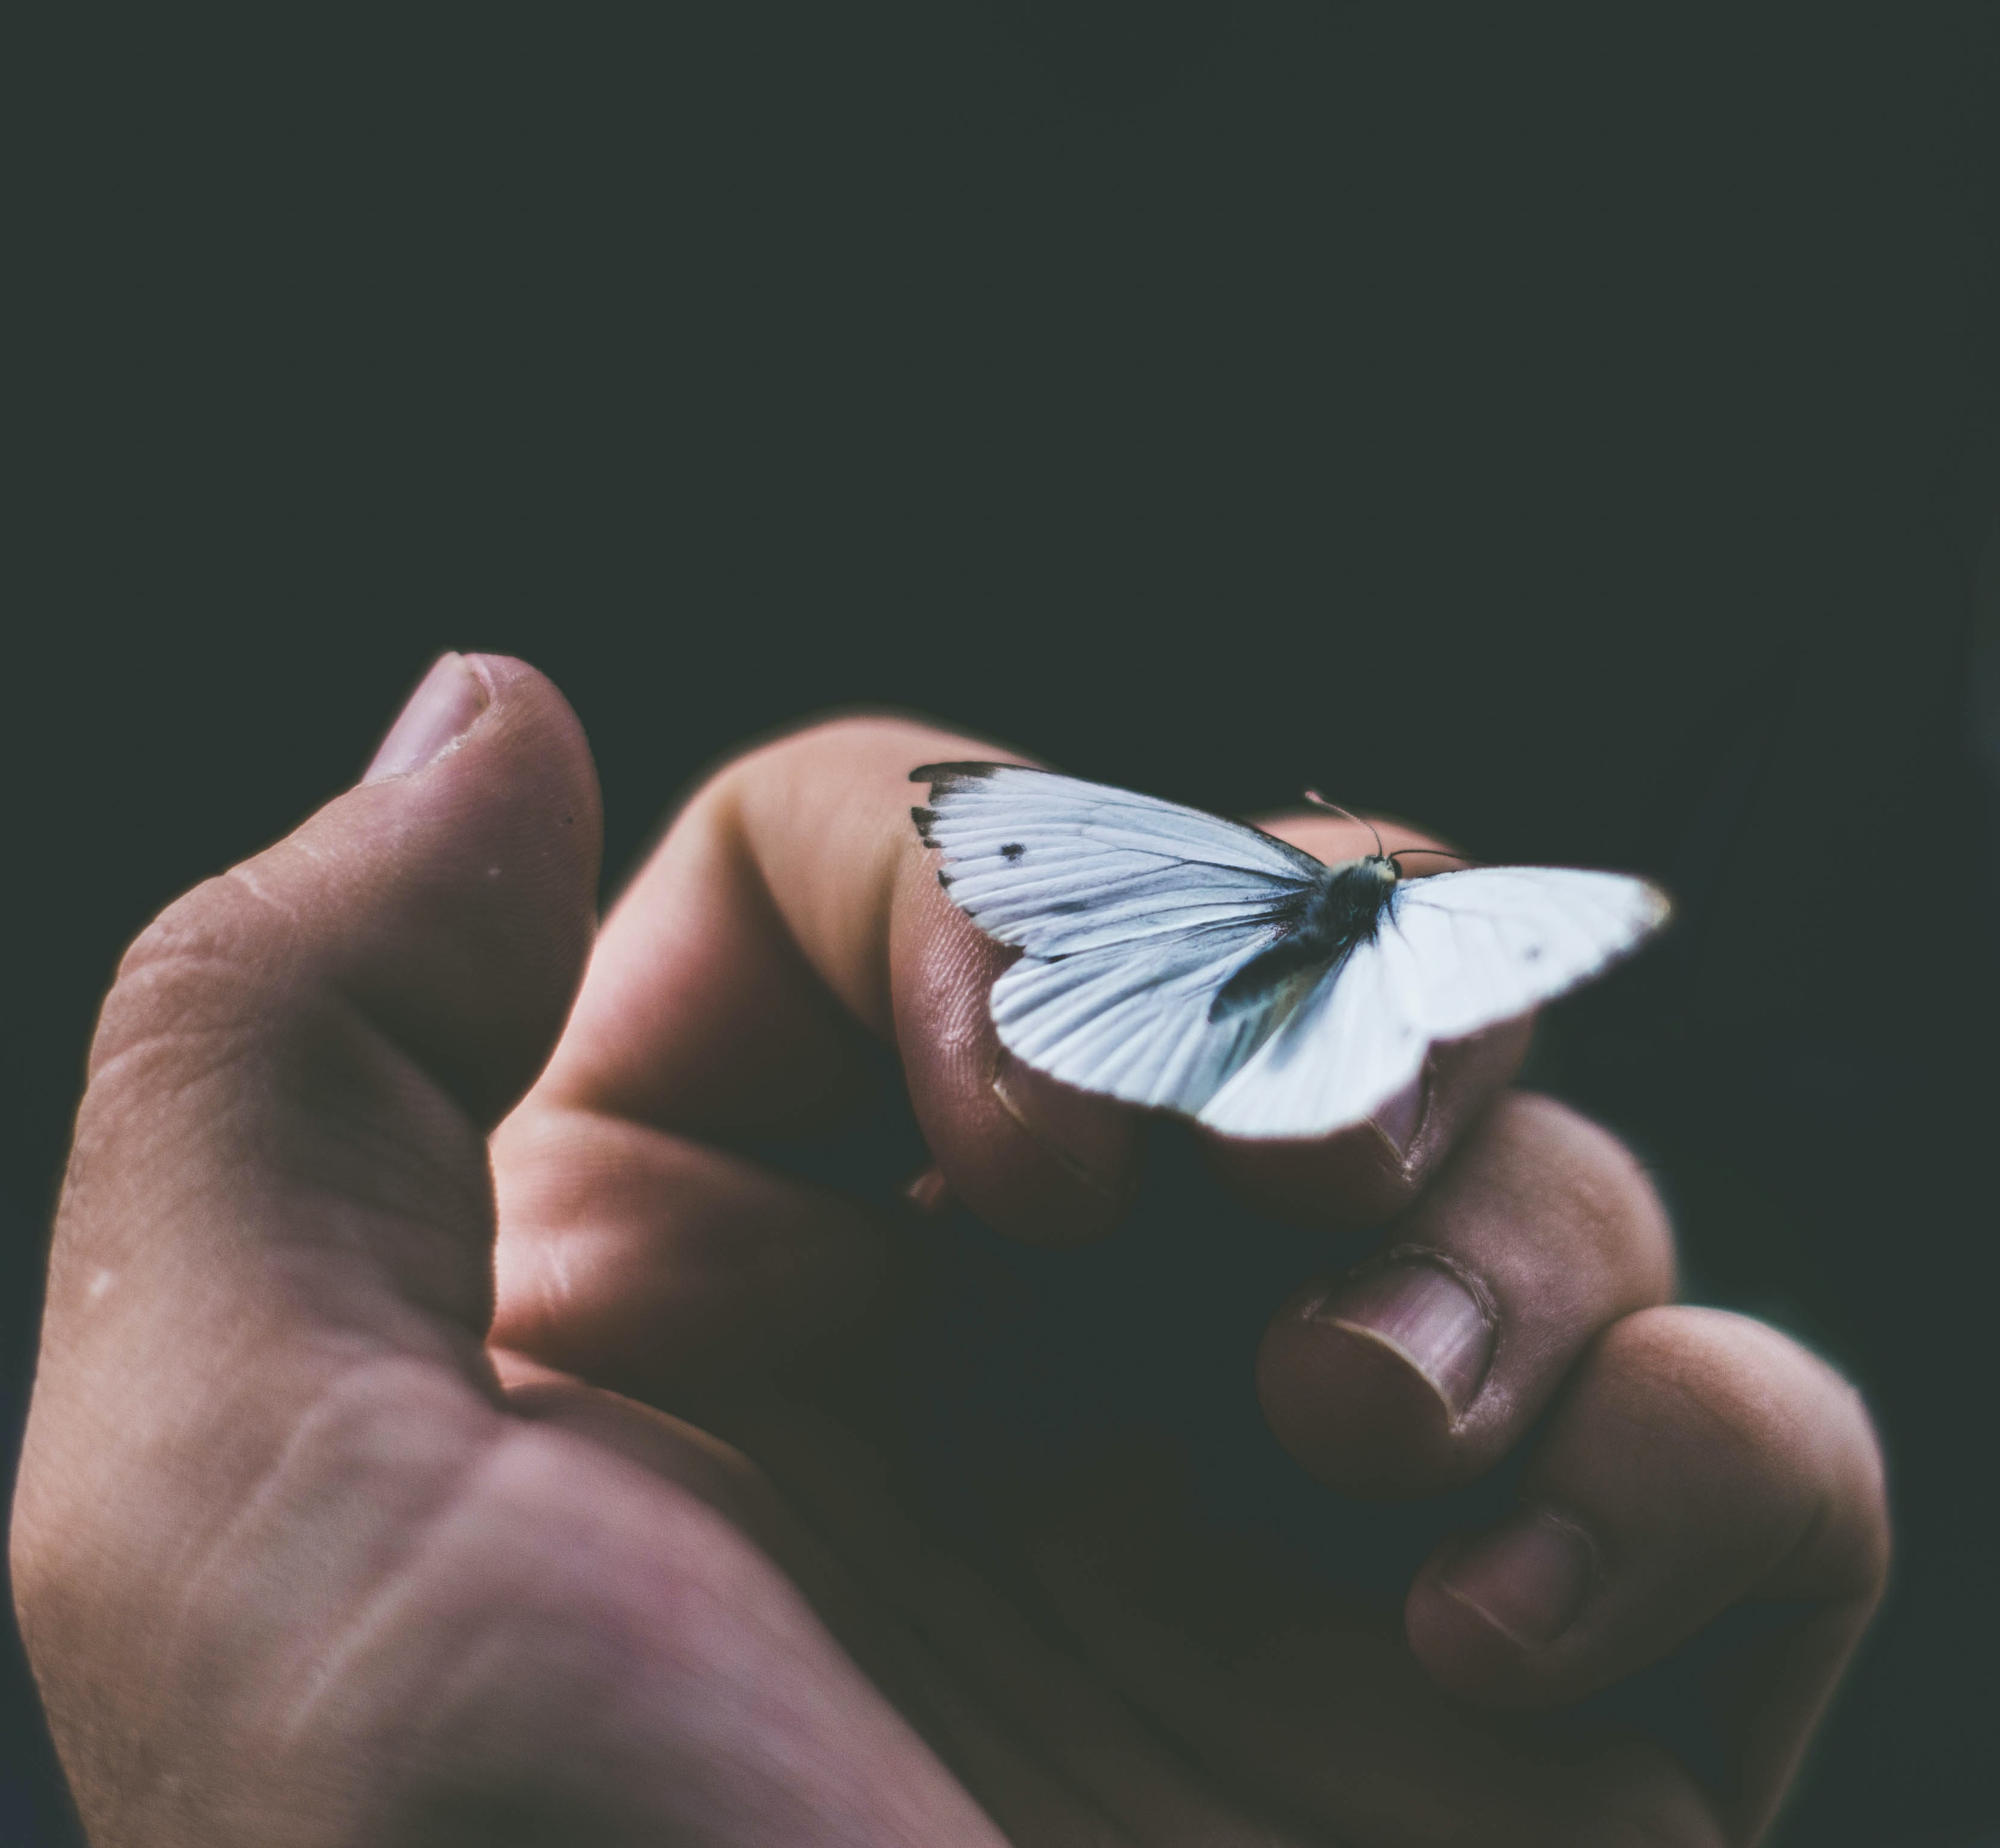 100 poisonous butterflies in my head poetry stories